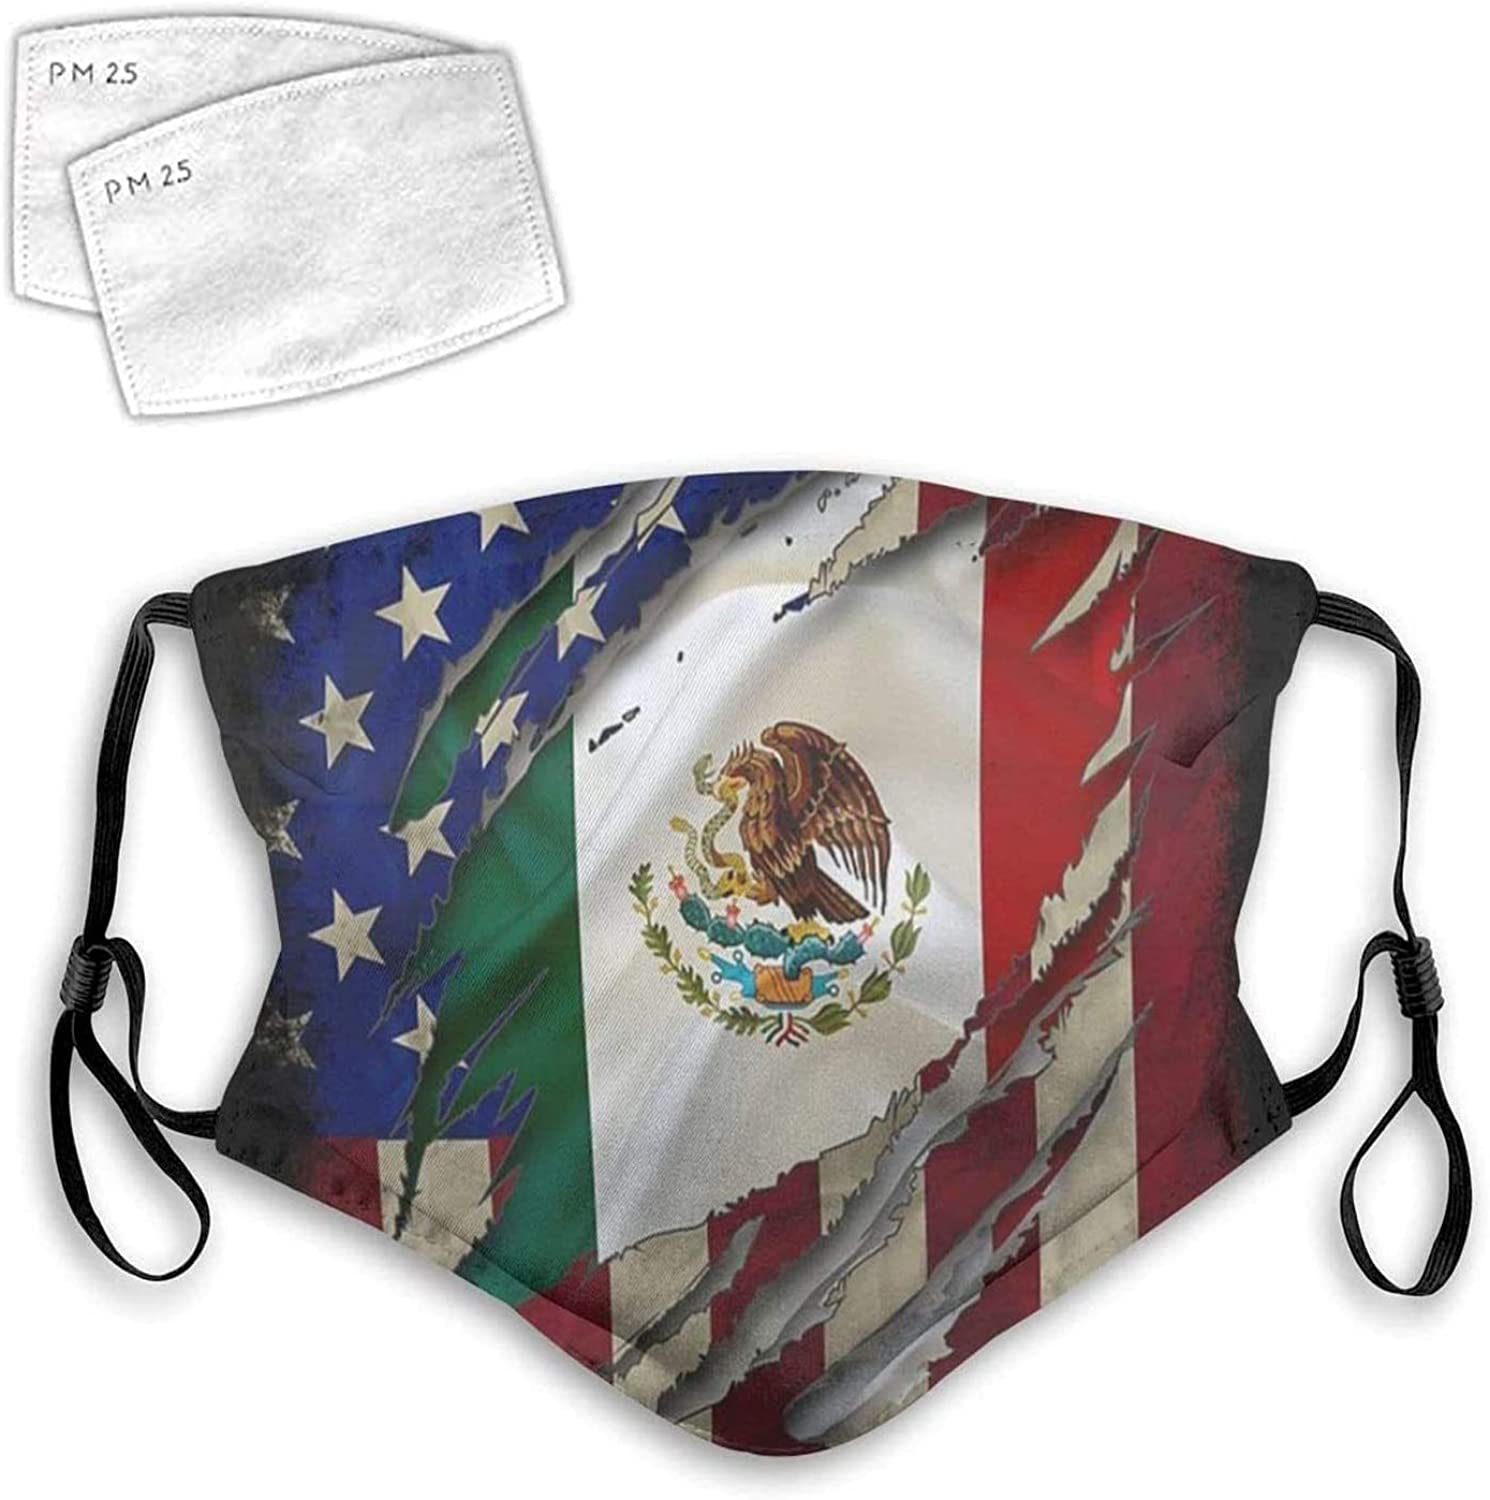 Proud Mexican Flag Reusable Face Mask Balaclava Washable Outdoor Nose Mouth Cover for Men and Women M